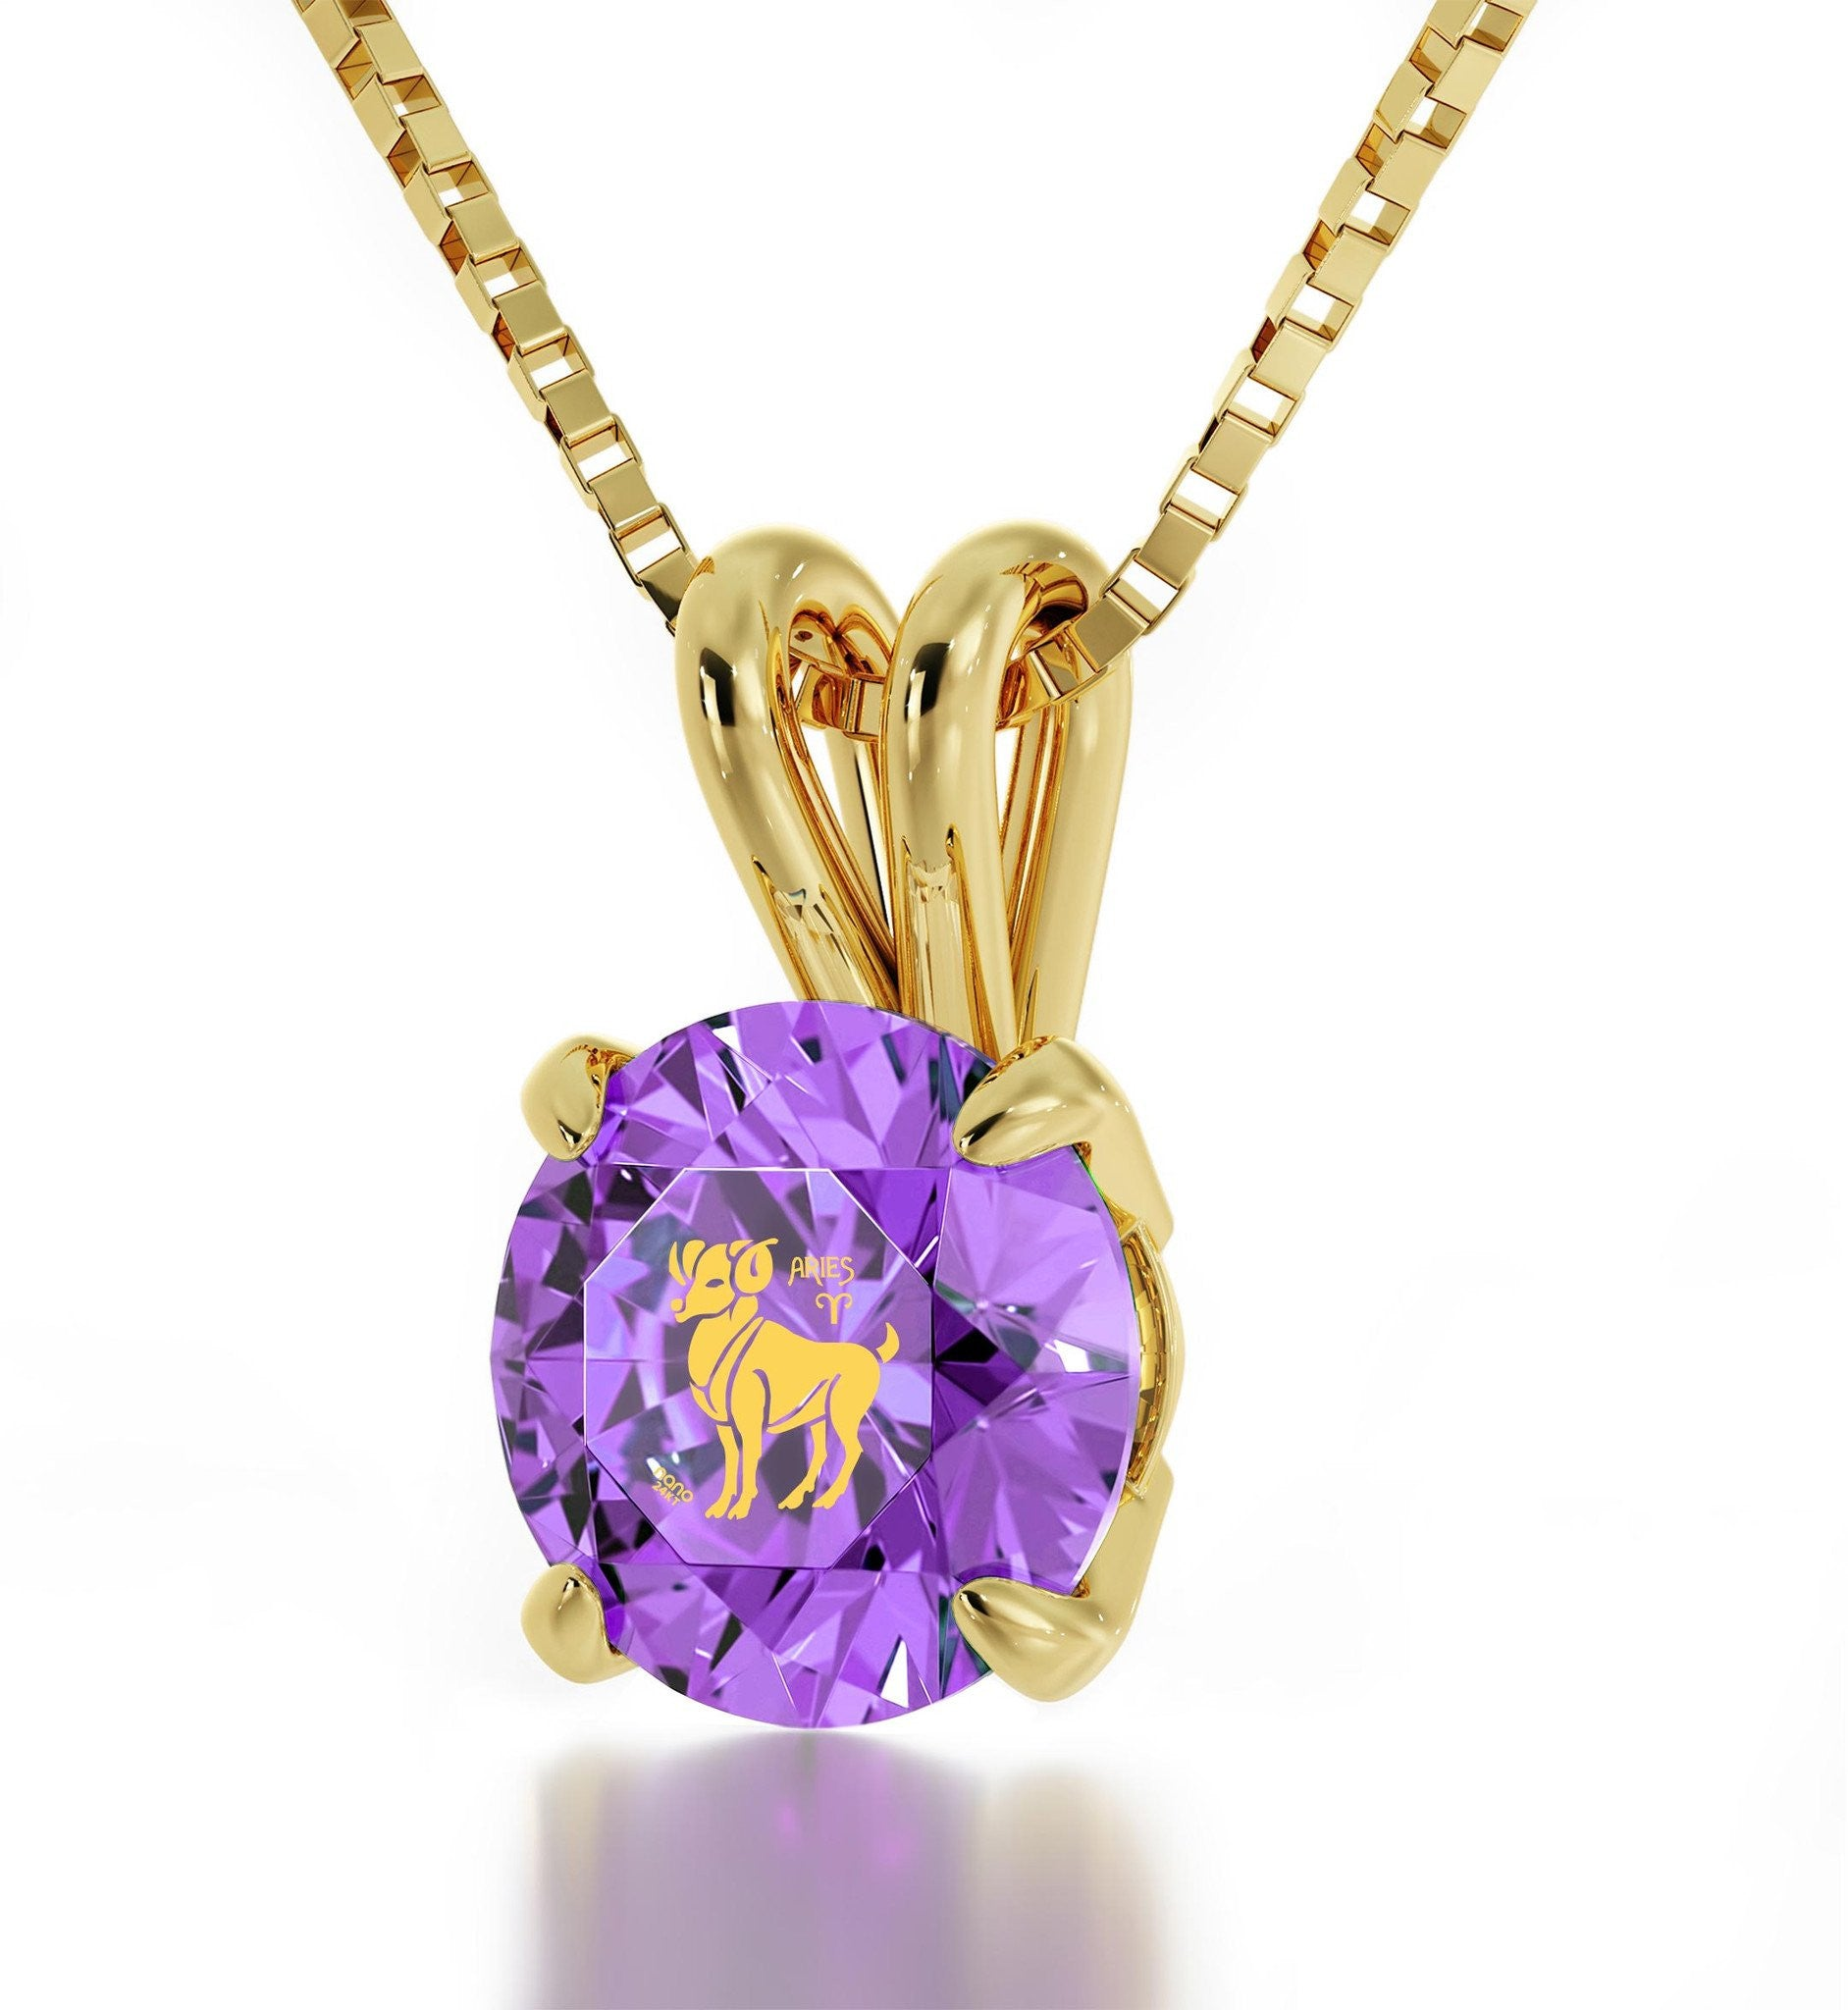 """GoodValentinesDayGifts for Girlfriend:AriesPendant, PurpleStoneJewelryChristmasIdeas for theWife by Nano"""